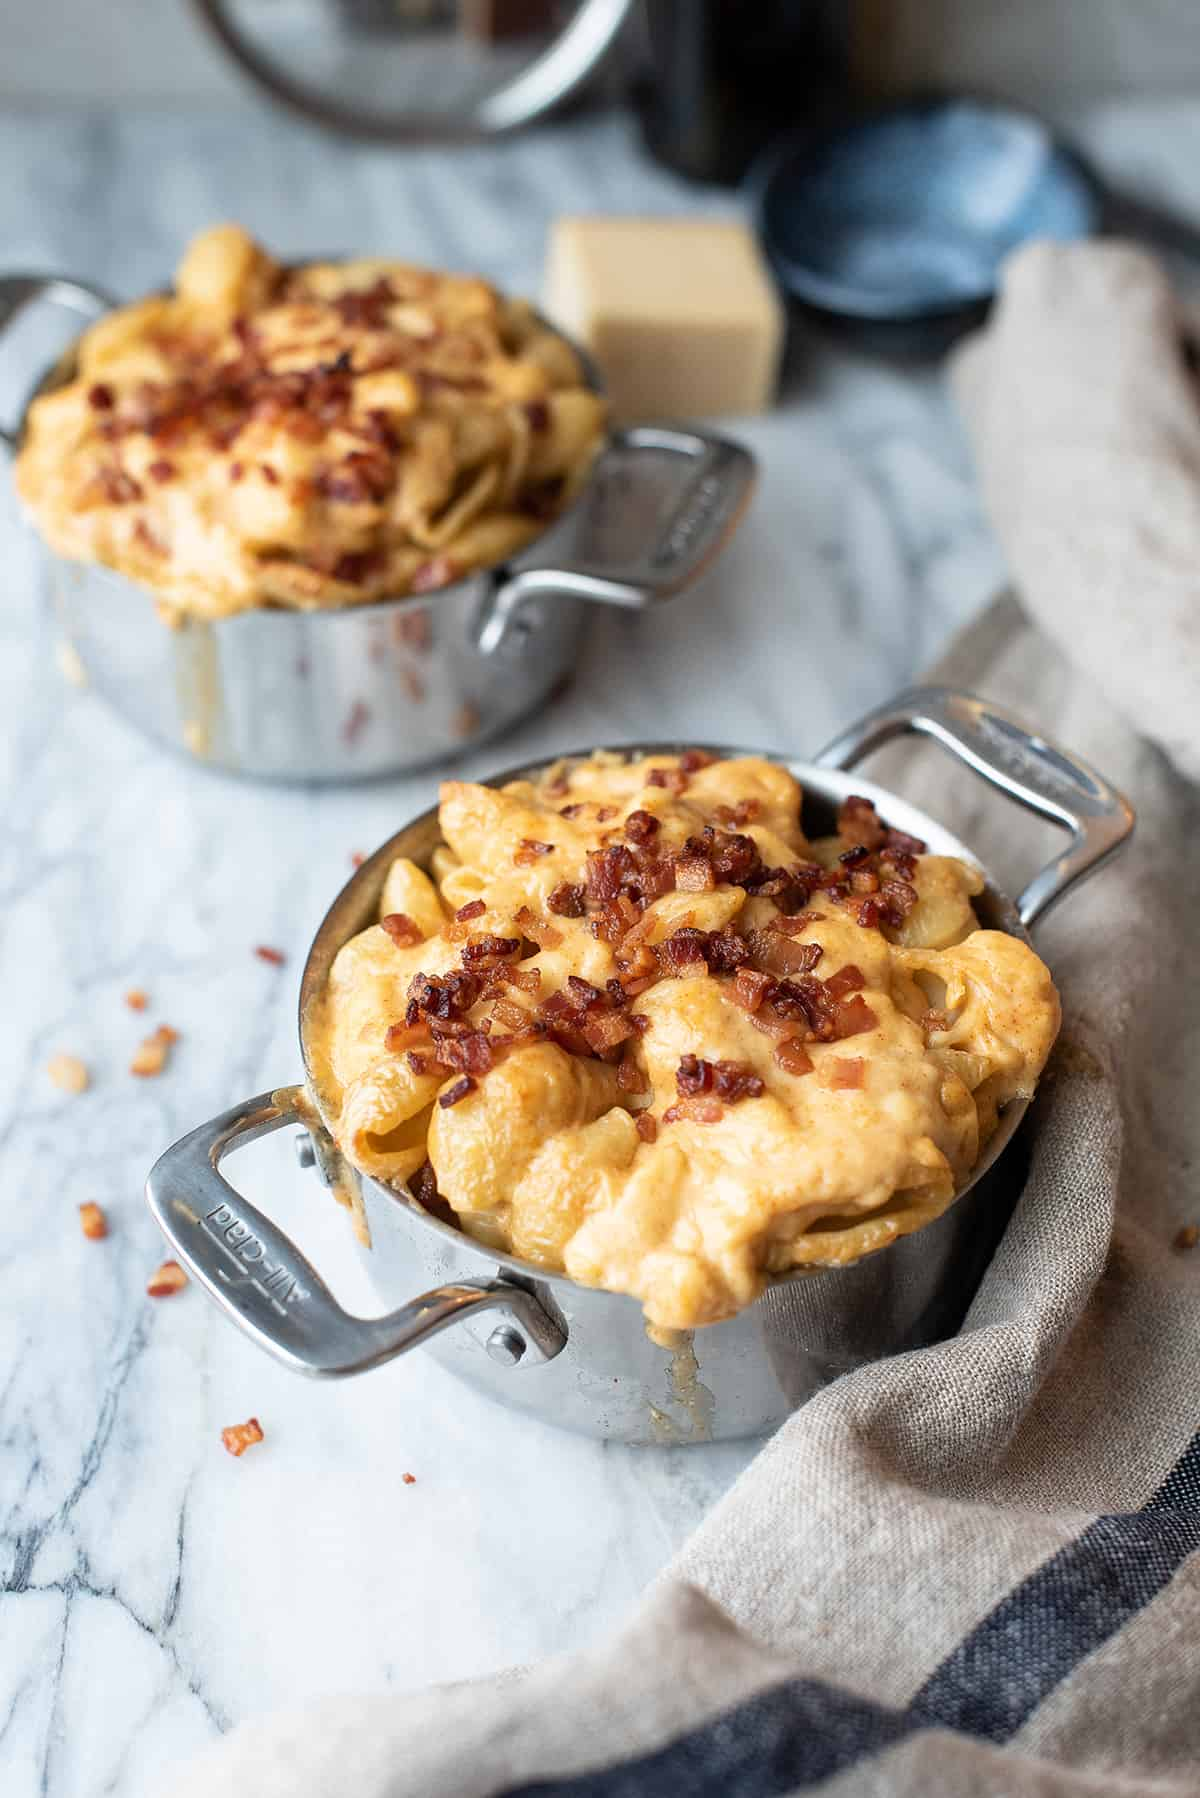 pan of smoked gouda mac & cheese with crumbled bacon on top